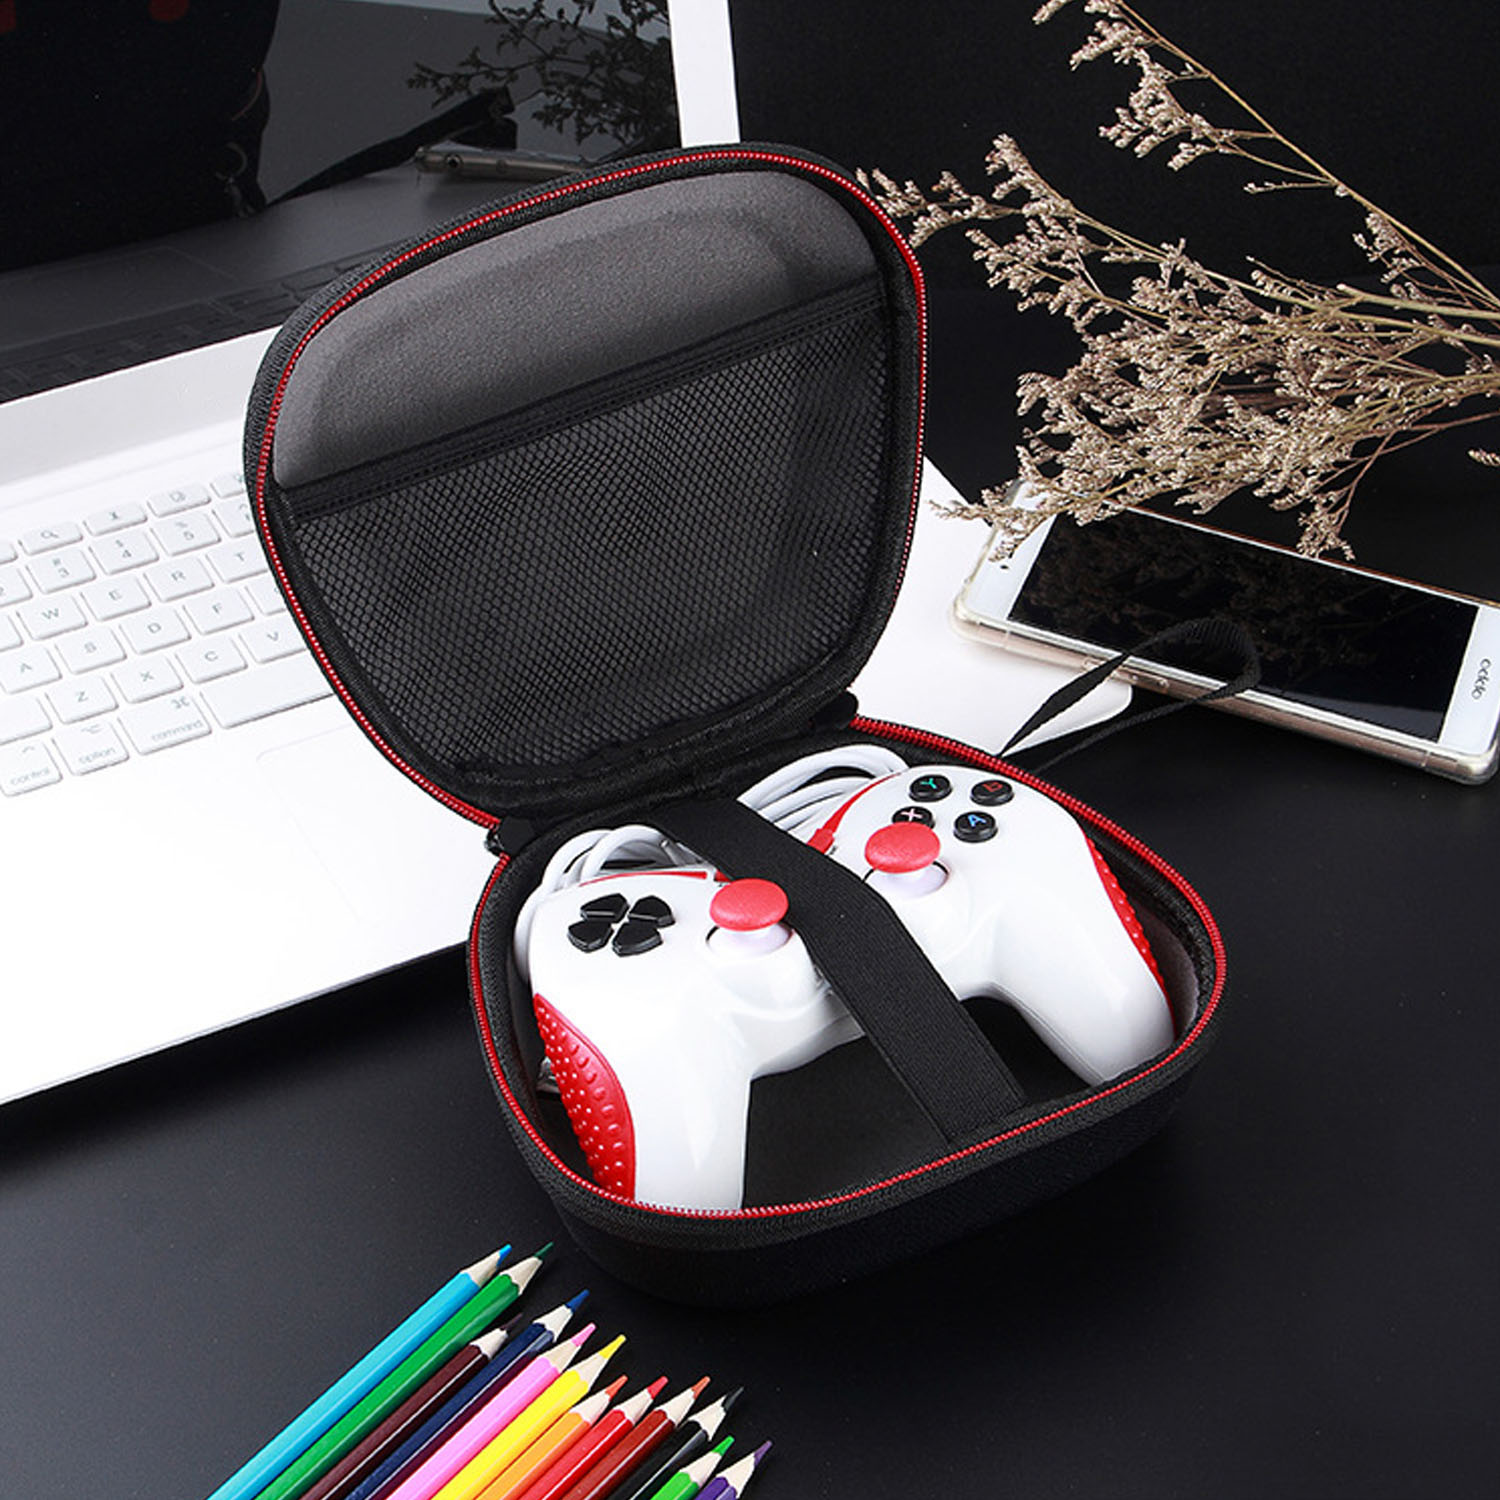 Bevigac Hard Shell Travel Carrying Case Bag Pouch Sleeve Shell Skin for Xbox One X S 360 Controller Console Accessories Gadgets